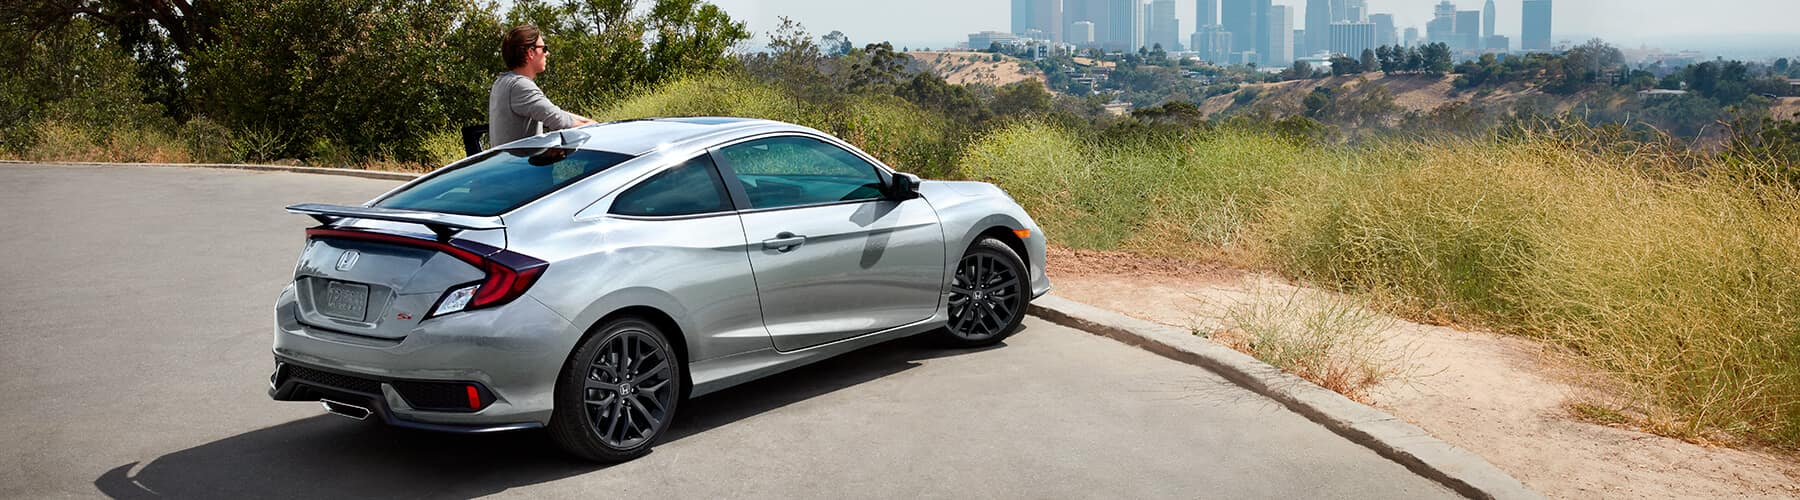 2020 Honda Civic Si Coupe Slider